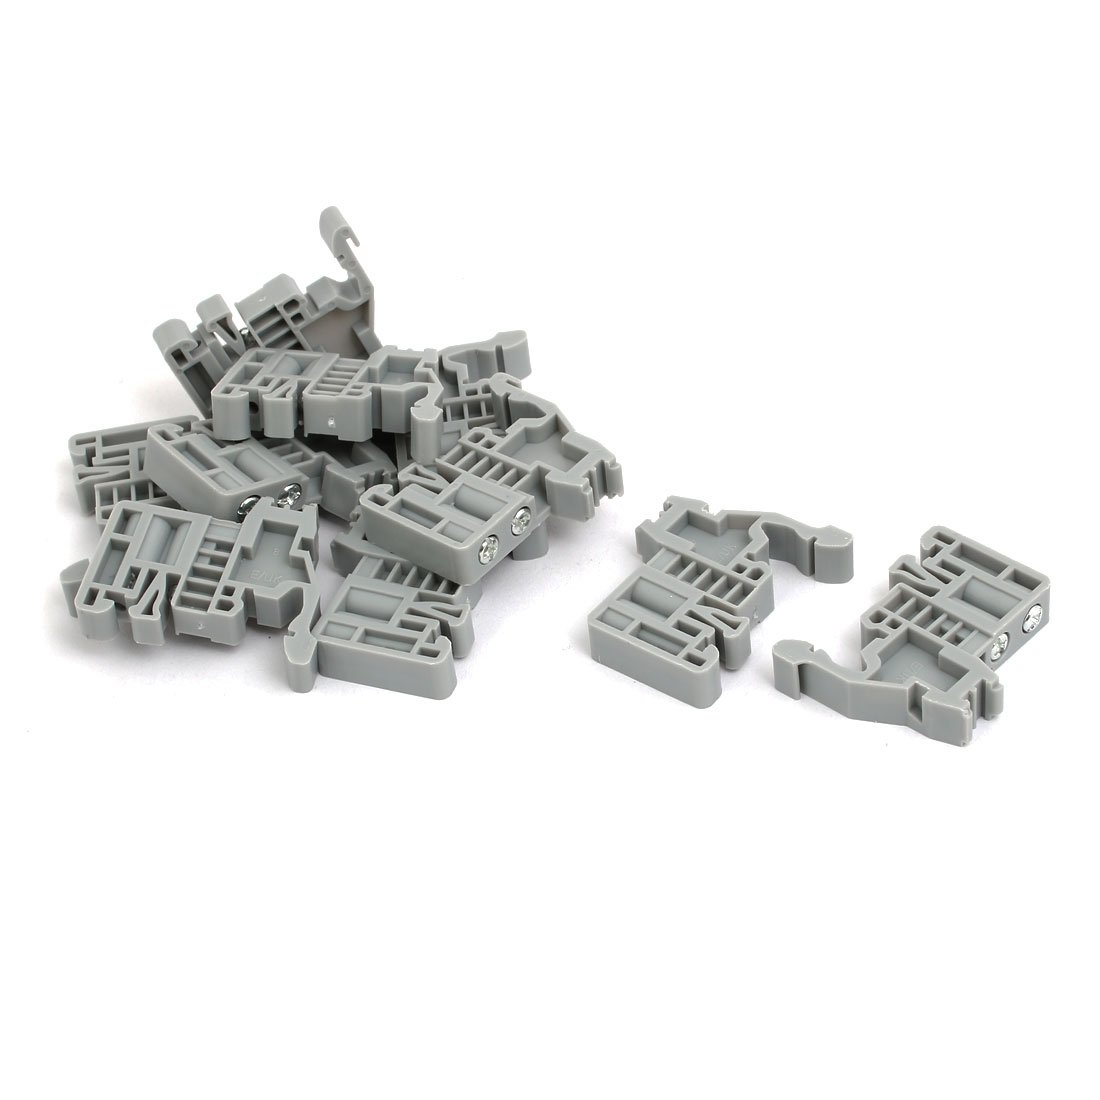 uxcell 10pcs 35mm DIN Rail Mount Guide Support Fixing Terminal Block